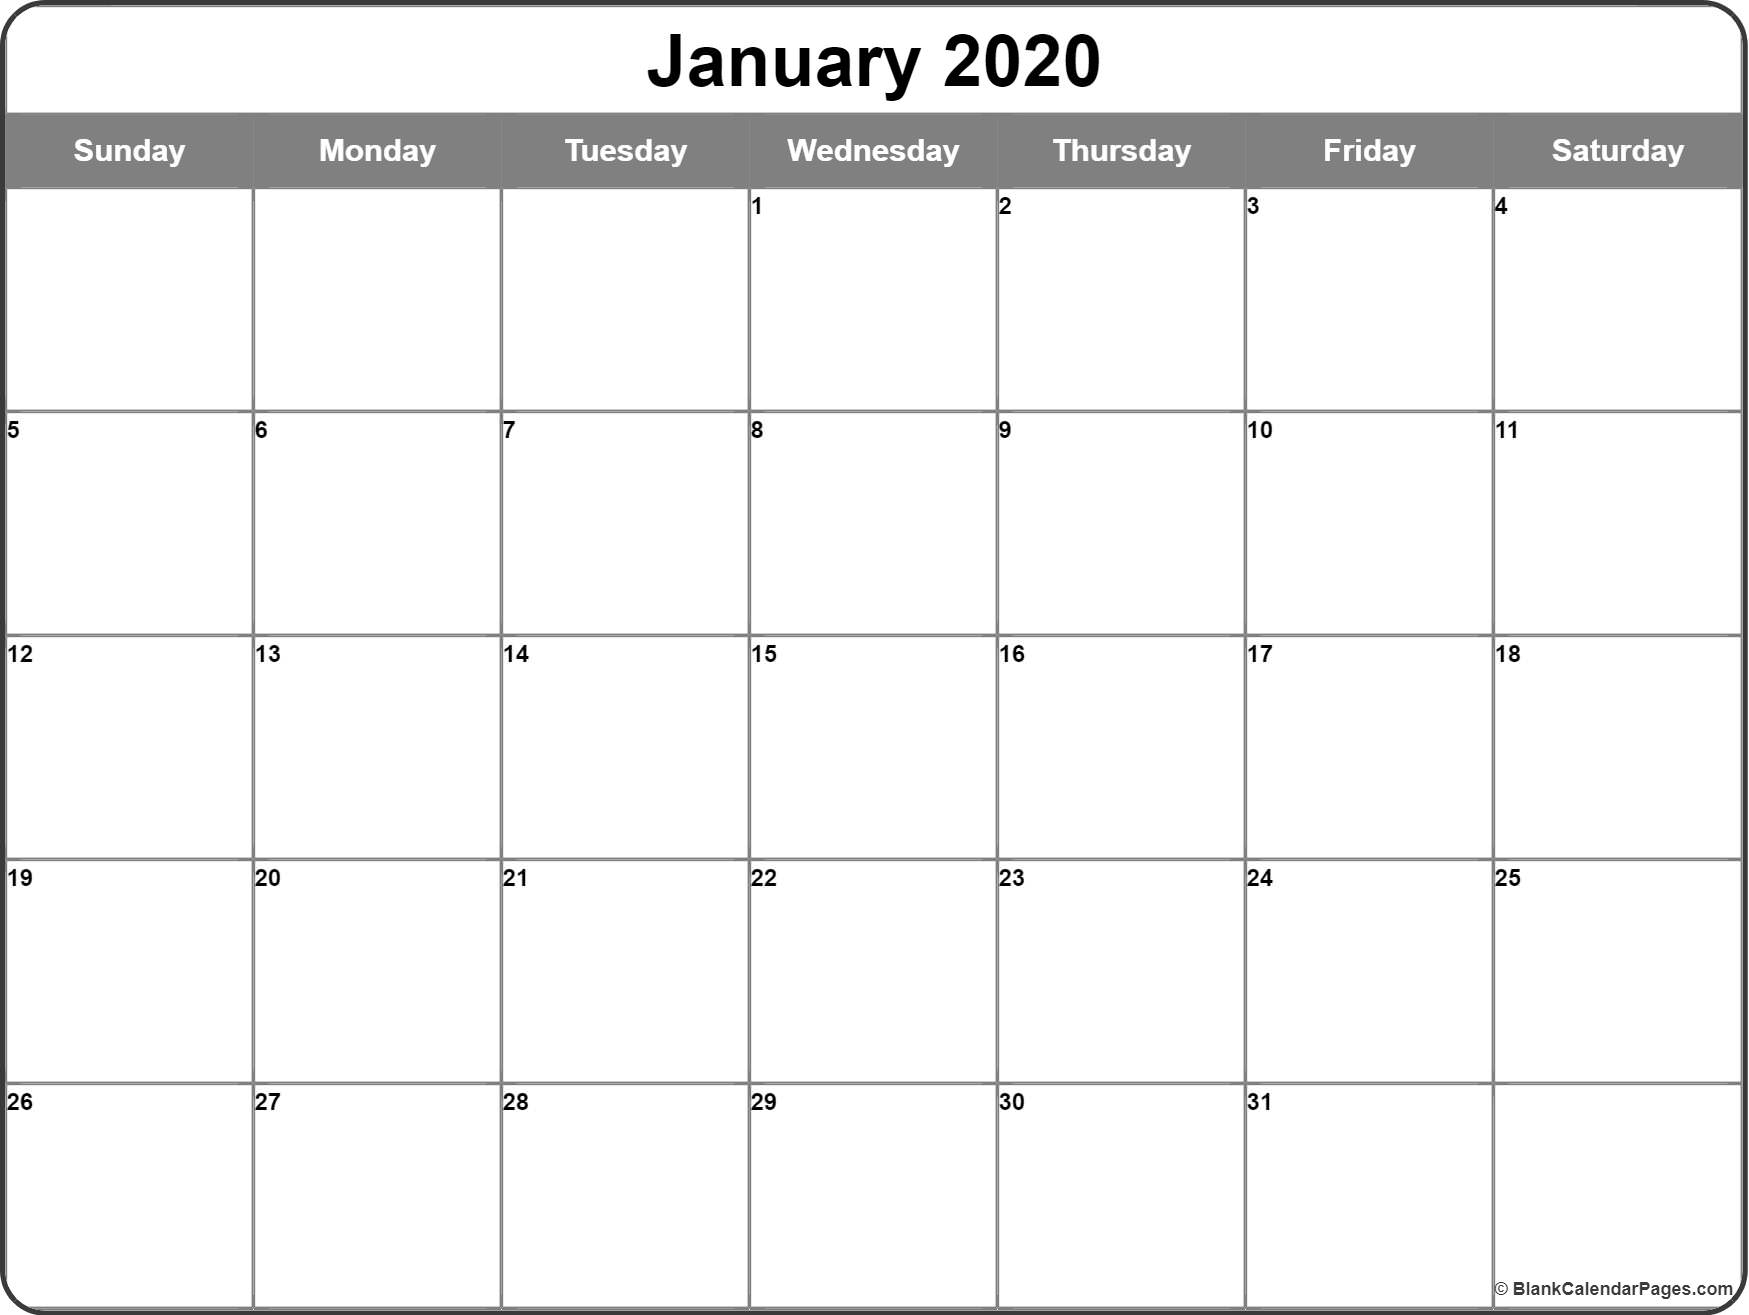 January 2020 Calendar | Free Printable Monthly Calendars with 2020 Imom Free Calendars To Print